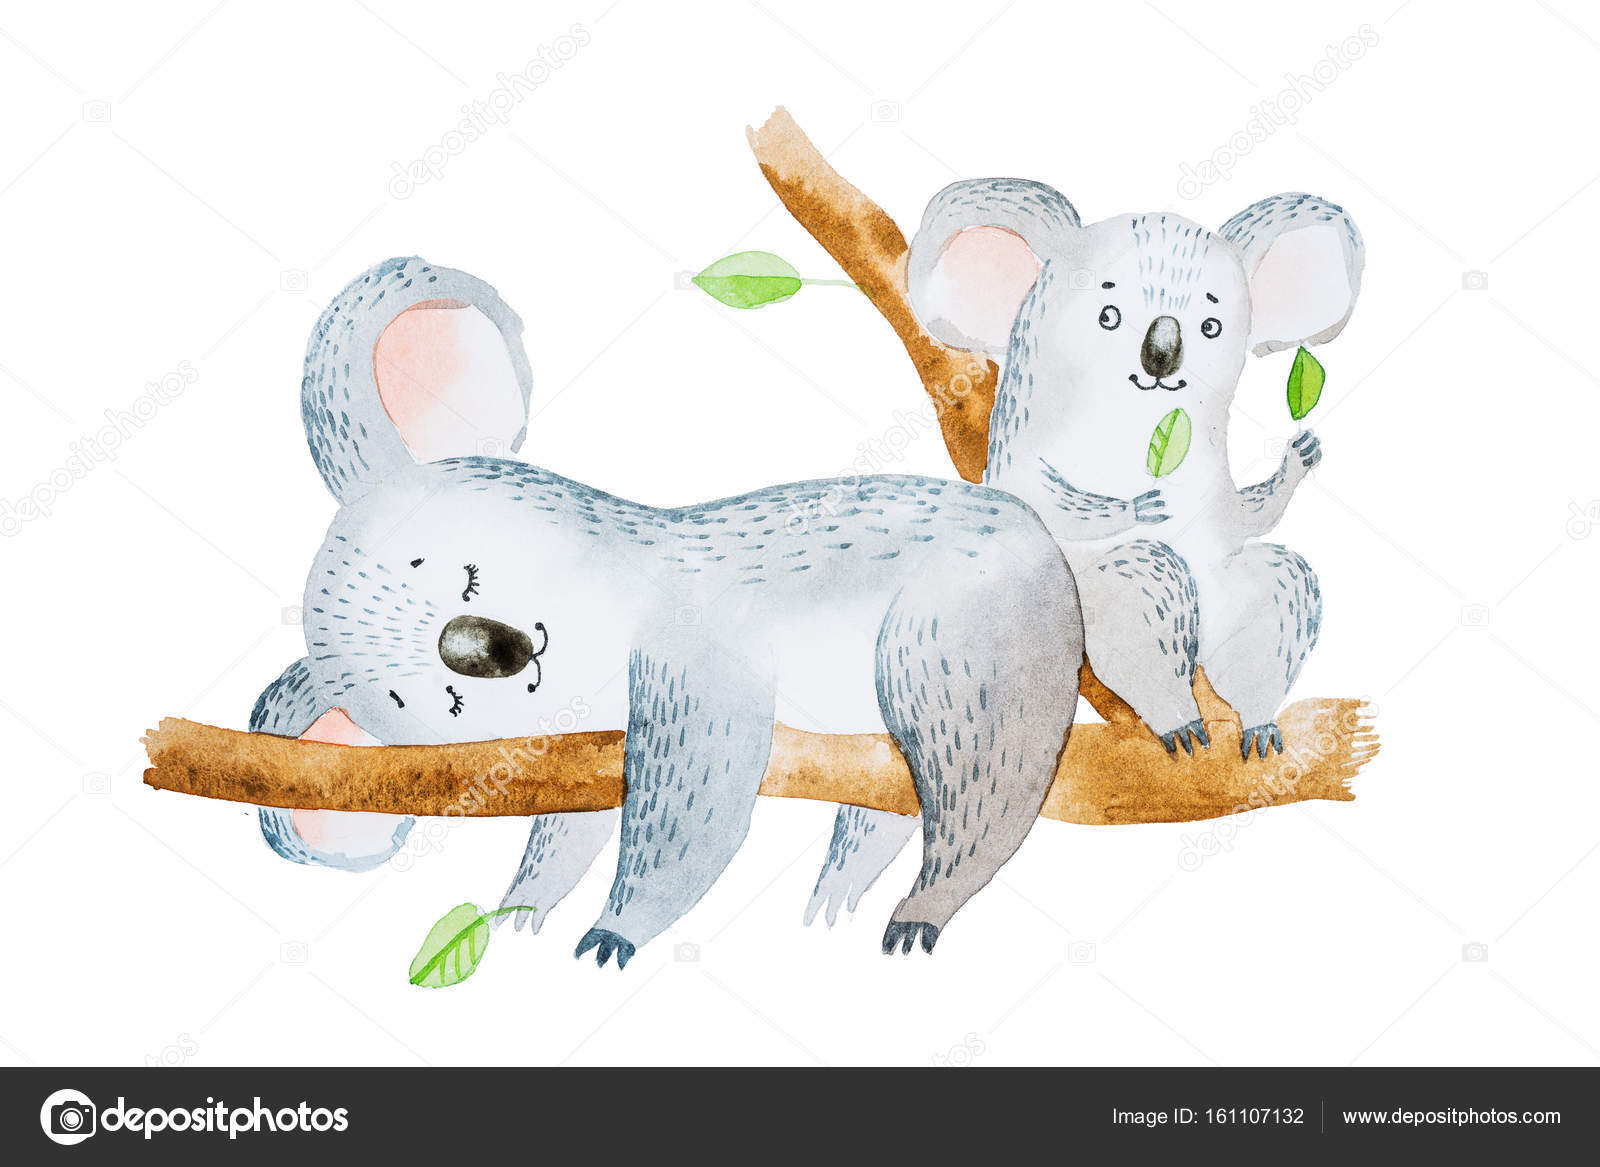 Images Eucalyptus Cartoon Watercolor Illustration Of Two Adorable Cartoon Koala Bears Sitting On Eucalyptus Tree Branch Stock Photo C Undrey 161107132 Download the perfect eucalyptus tree pictures. https depositphotos com 161107132 stock photo watercolor illustration of two adorable html